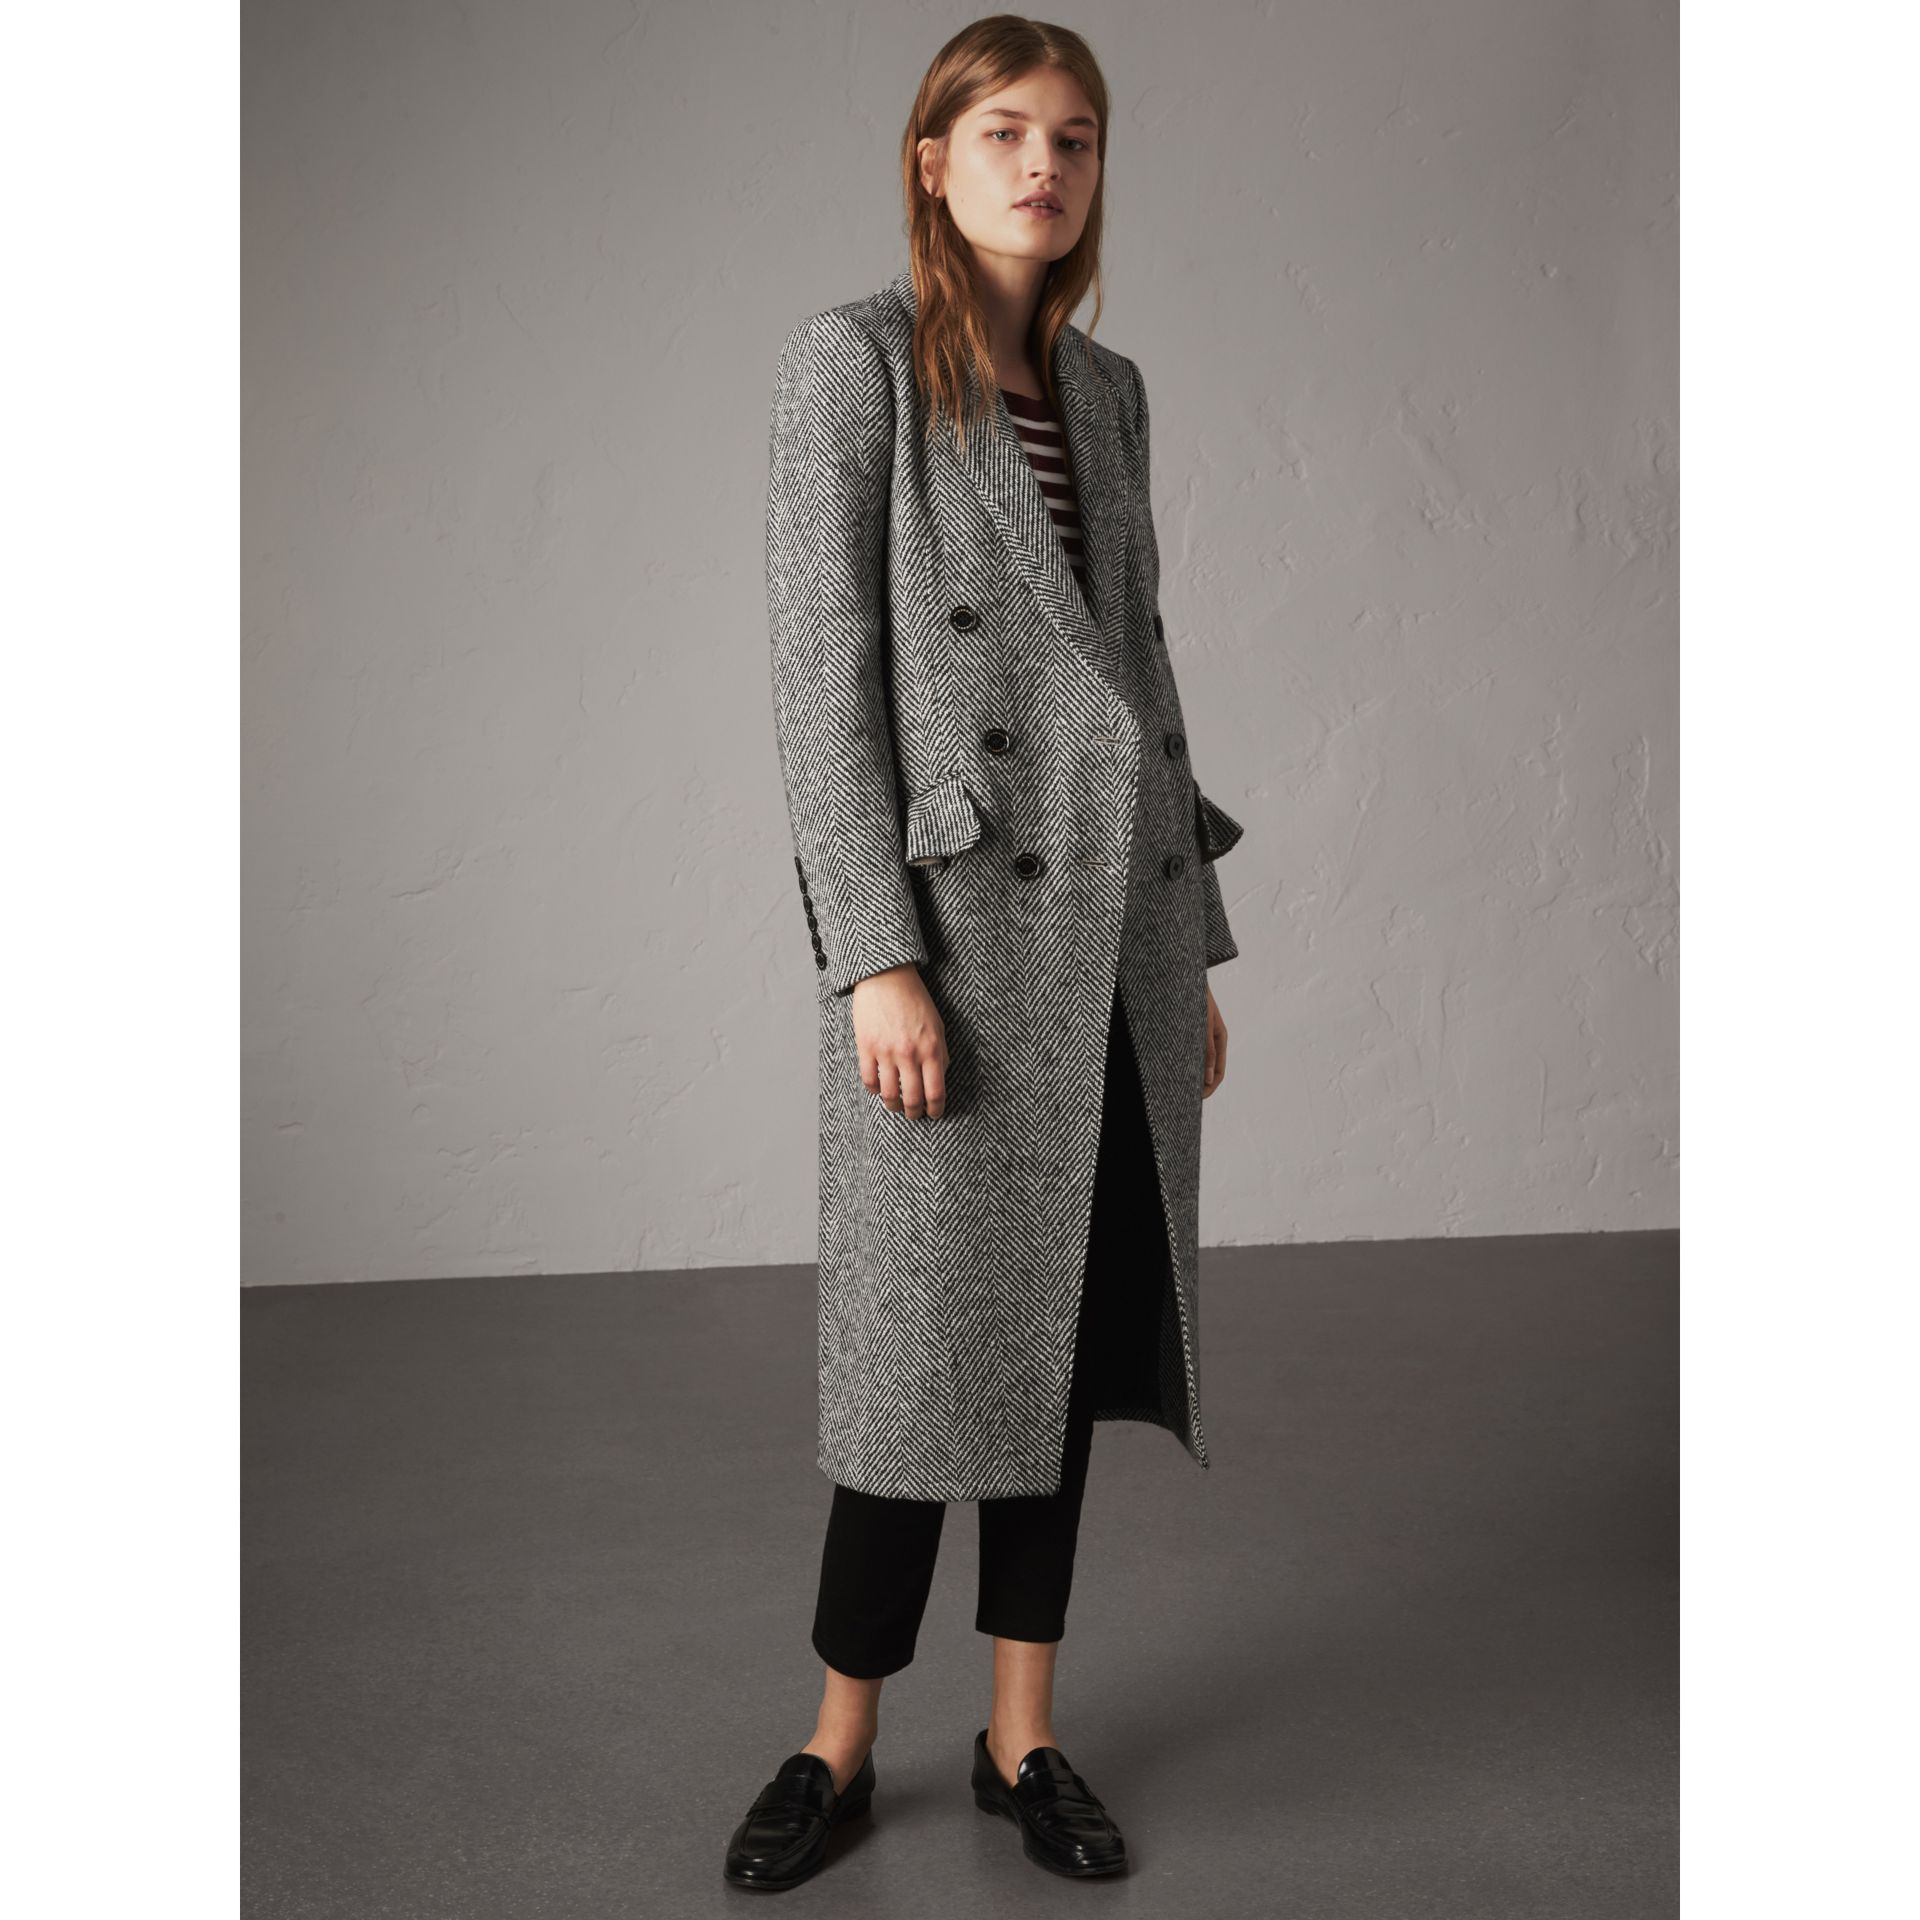 Donegal Herringbone Wool Tweed Tailored Coat - Women | Burberry Australia - gallery image 1